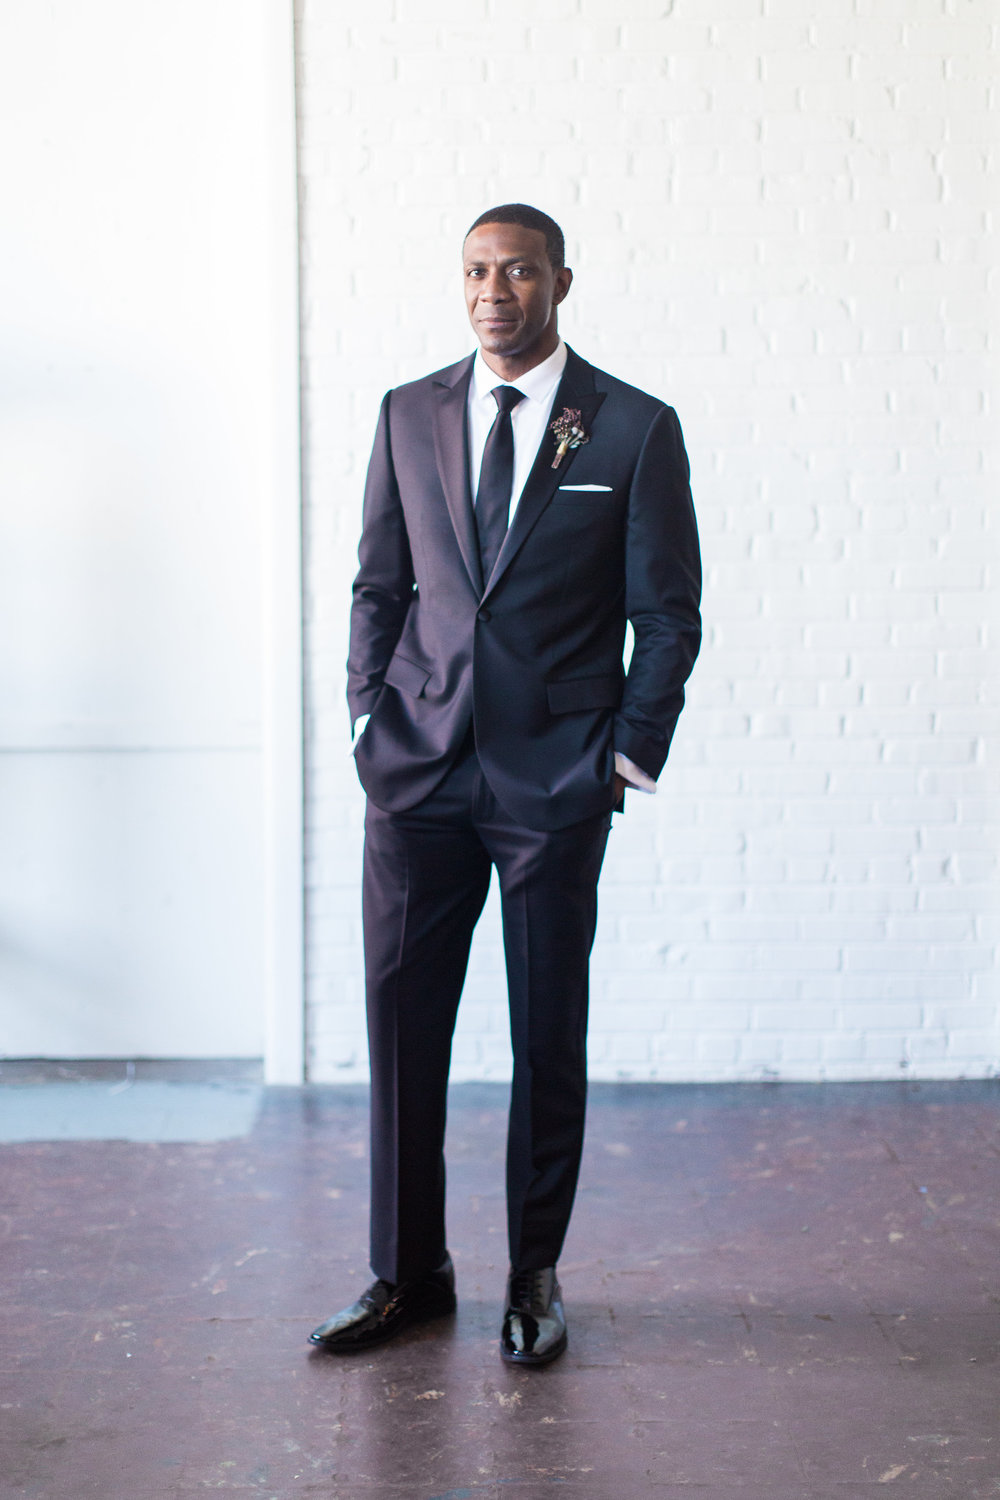 Fit - Fit is paramount. Making a better fitting rental was the reason we stared Lapel. Our suits and tuxedos are designed slim through the body with a higher armhole. A perfect blend of classic and contemporary.